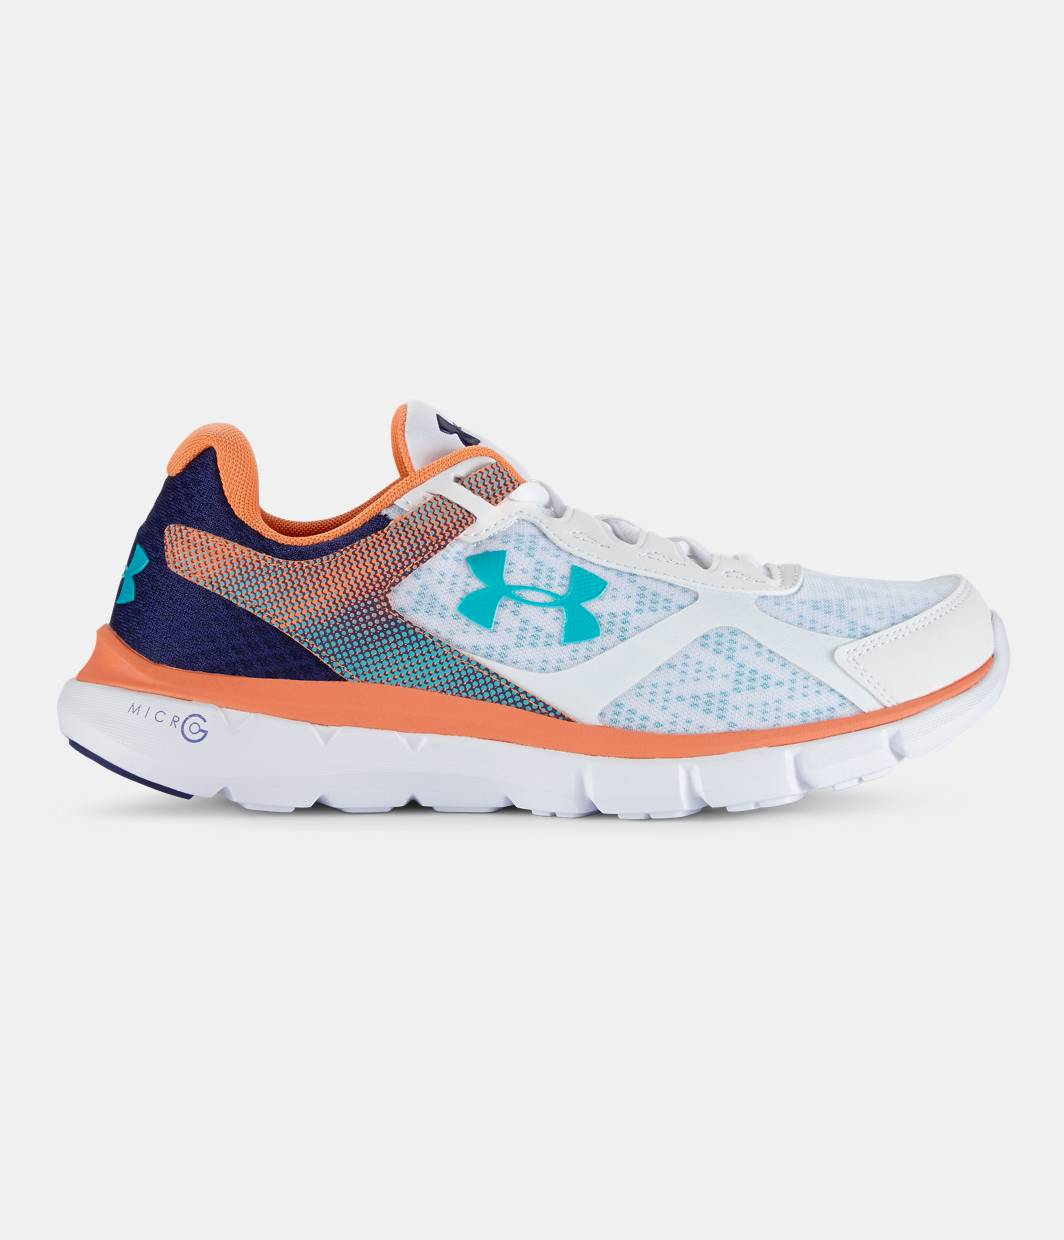 Under Armour Micro G Velocity Run Storm Womens Running Shoes W59t7999